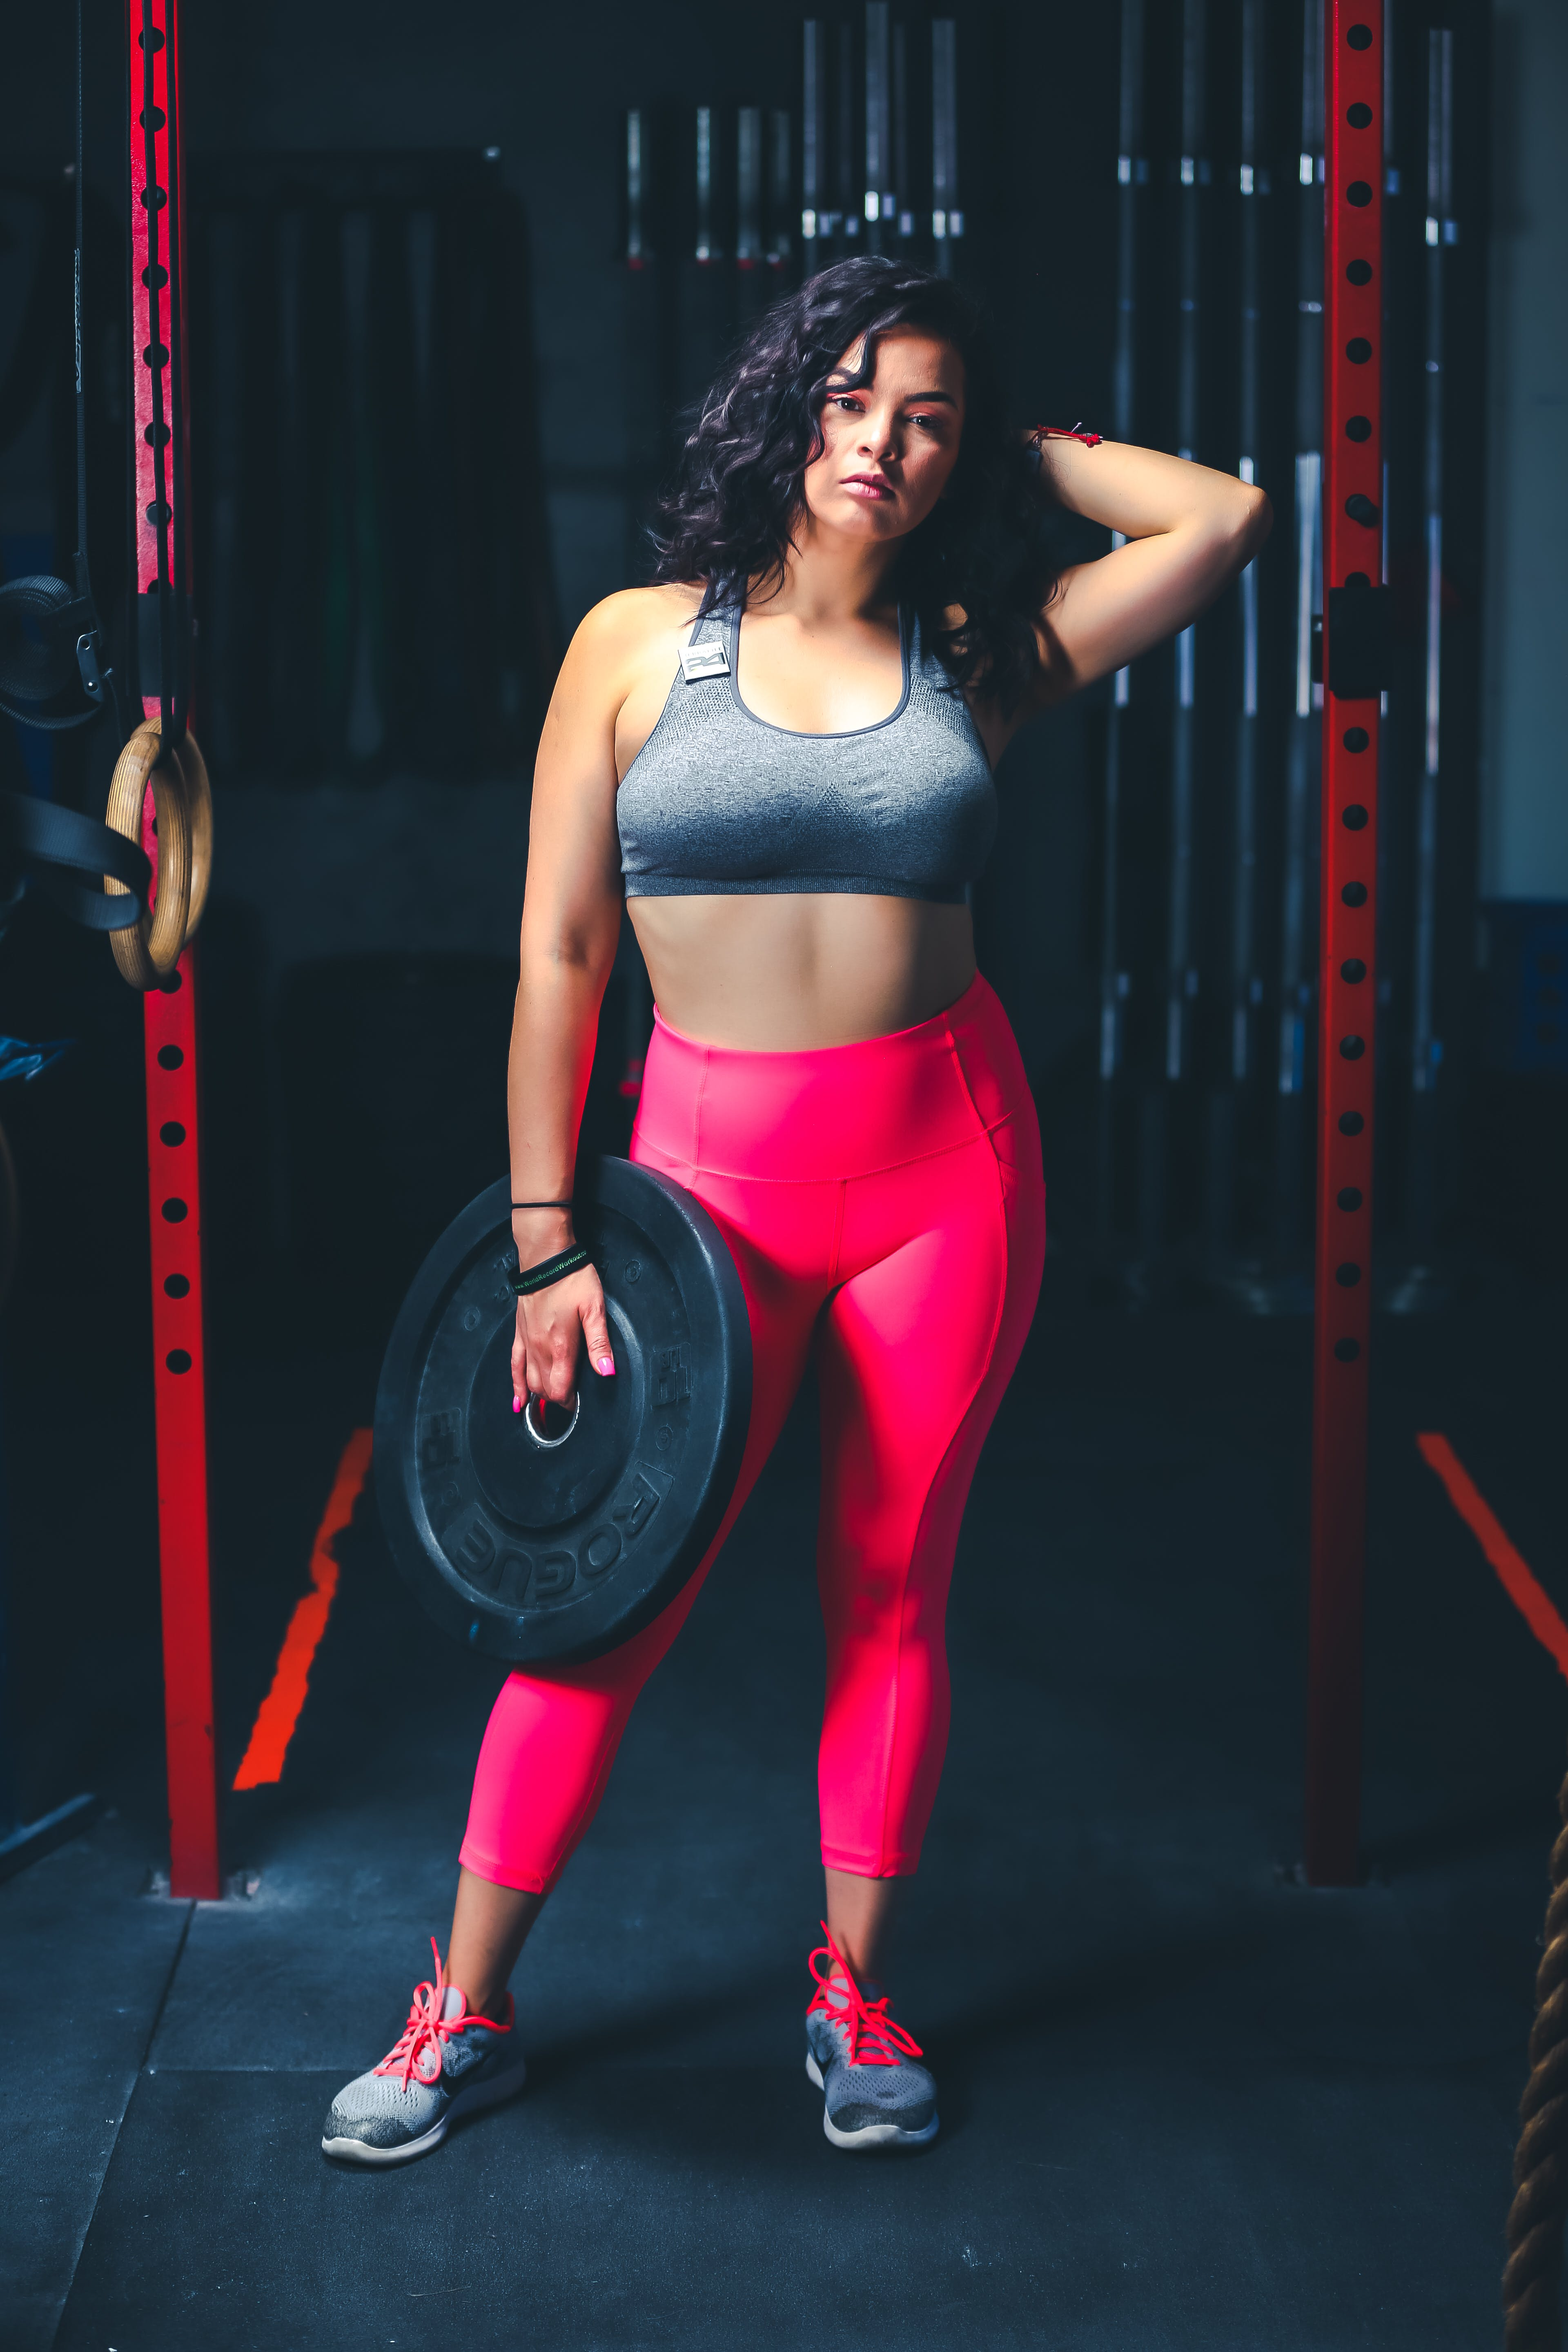 Woman In Grey Sports Bra And Pink Leggings Holding Black Weight Plate